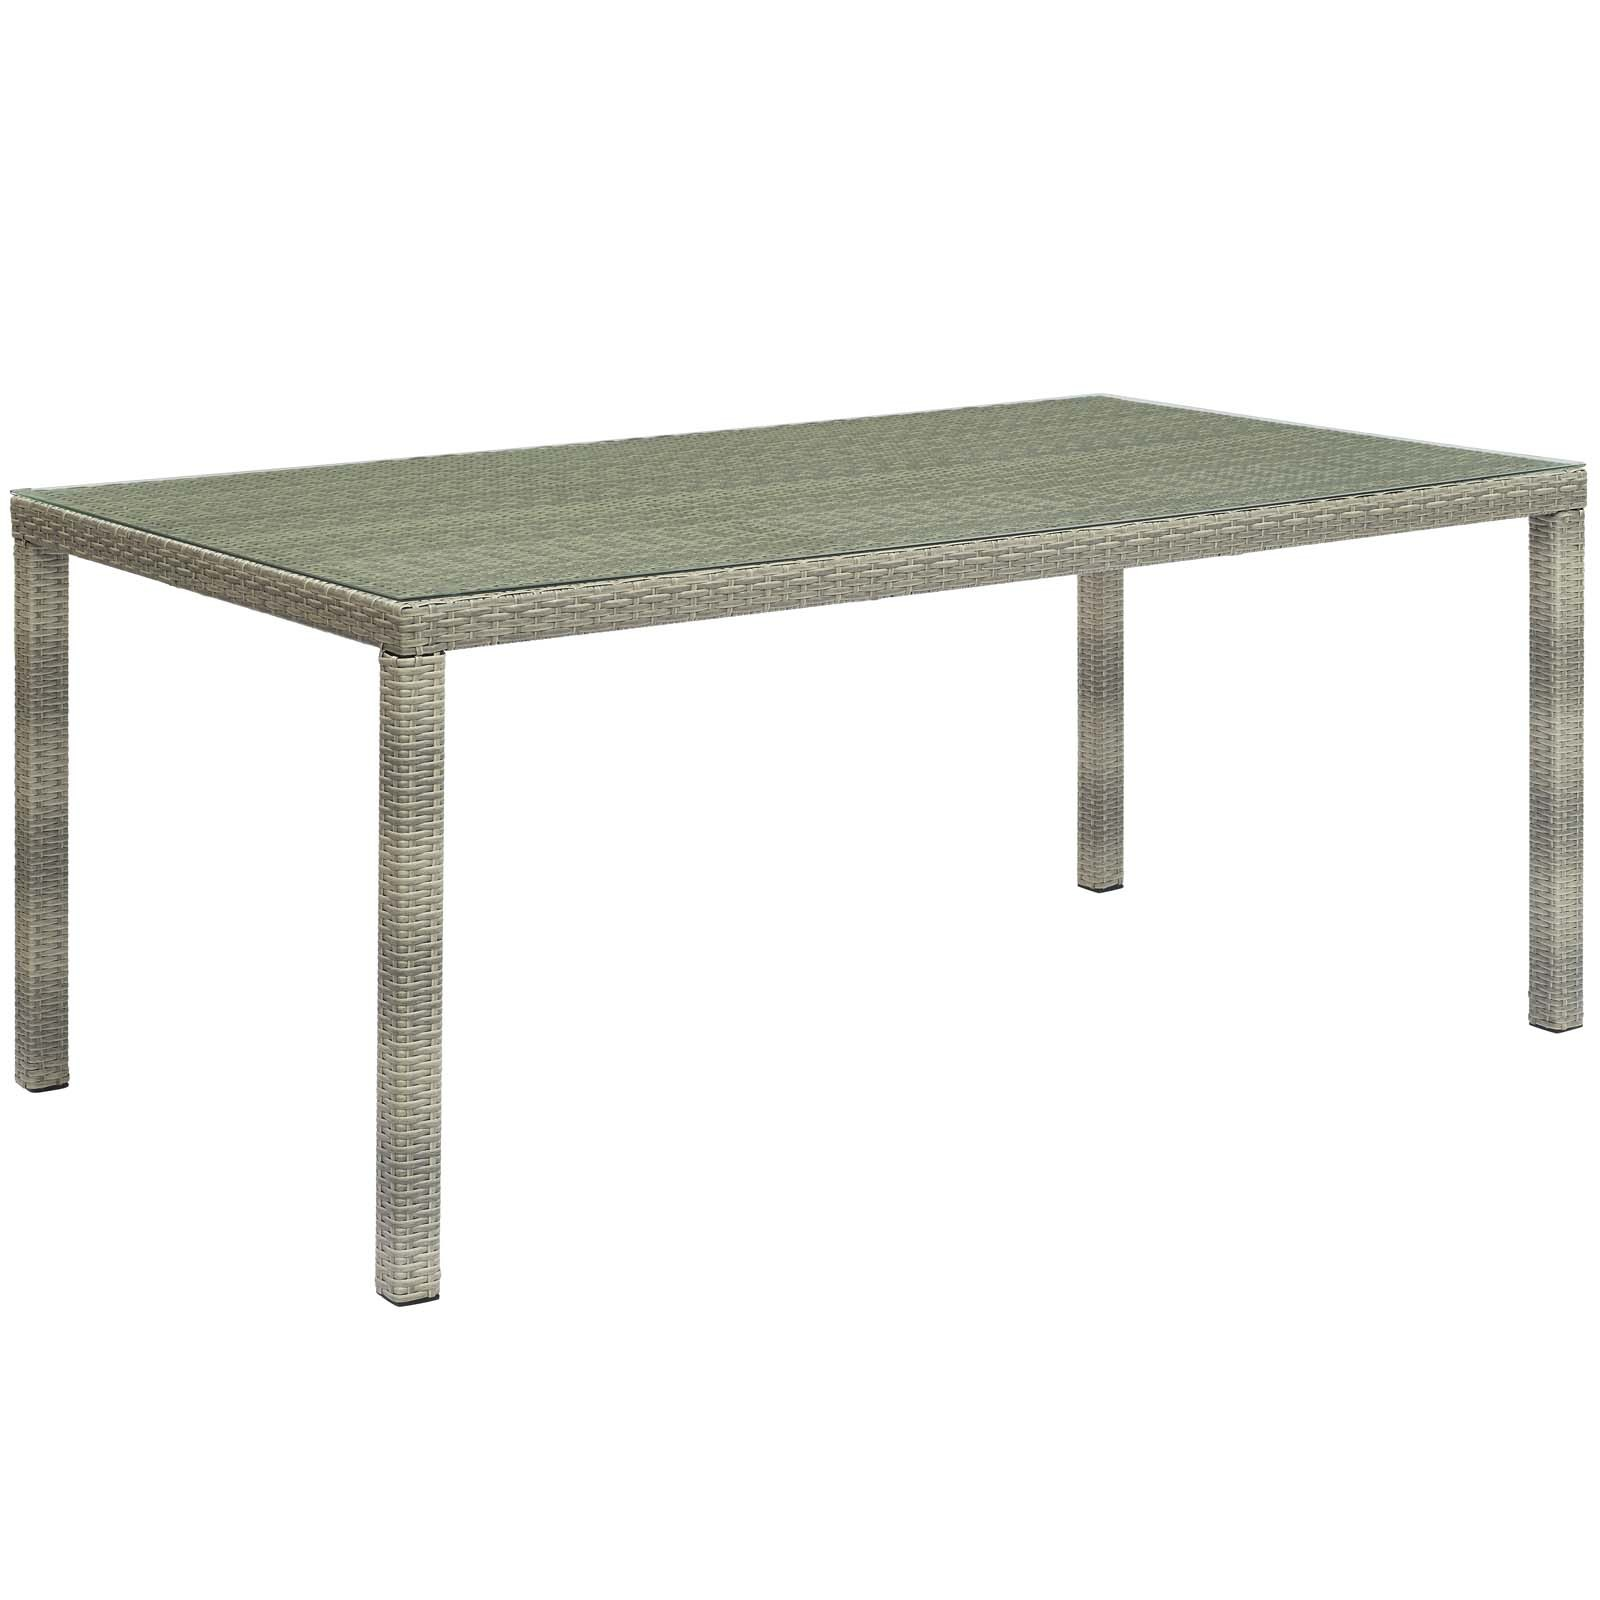 Modterior Outdoor Dining Tables Conduit 70